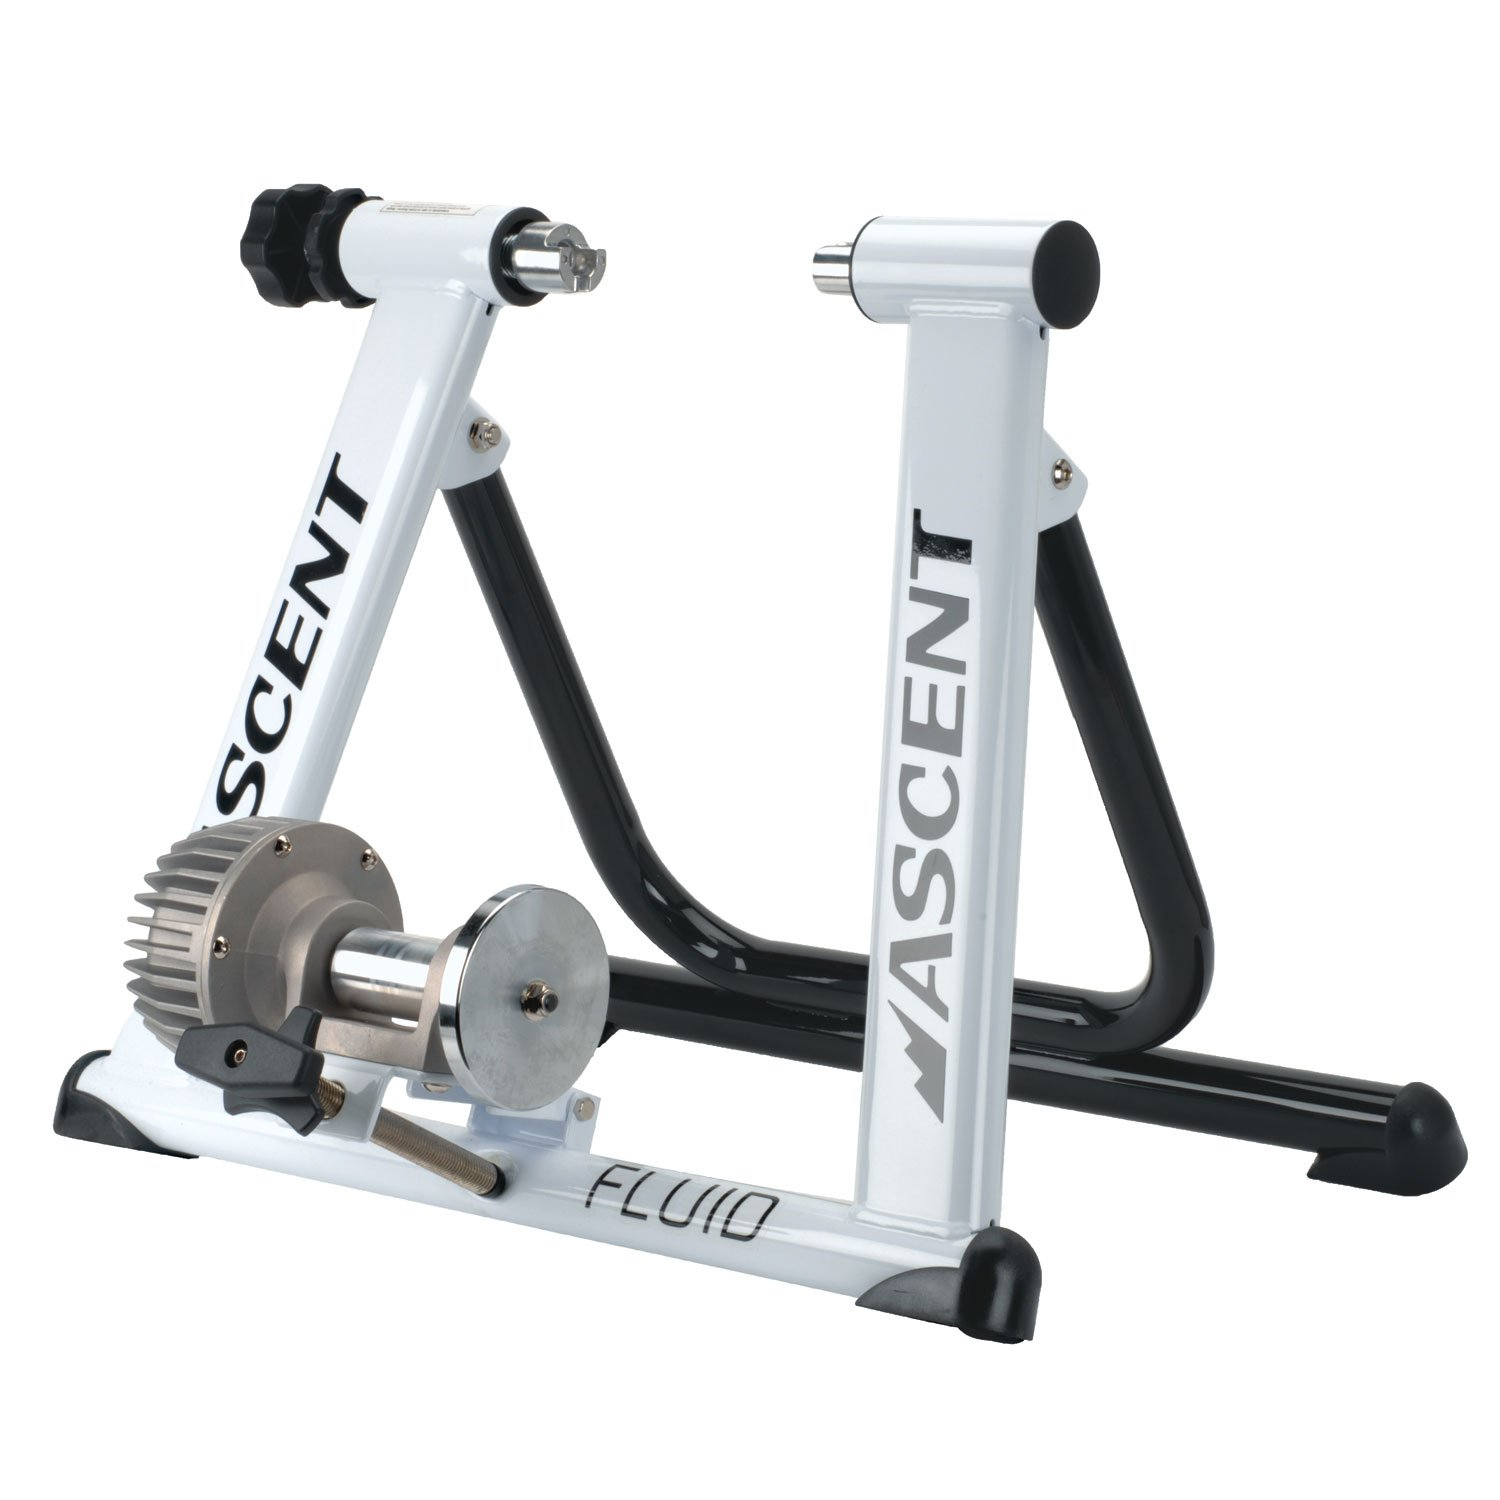 Ascent Fluid Indoor Bicycle Trainer